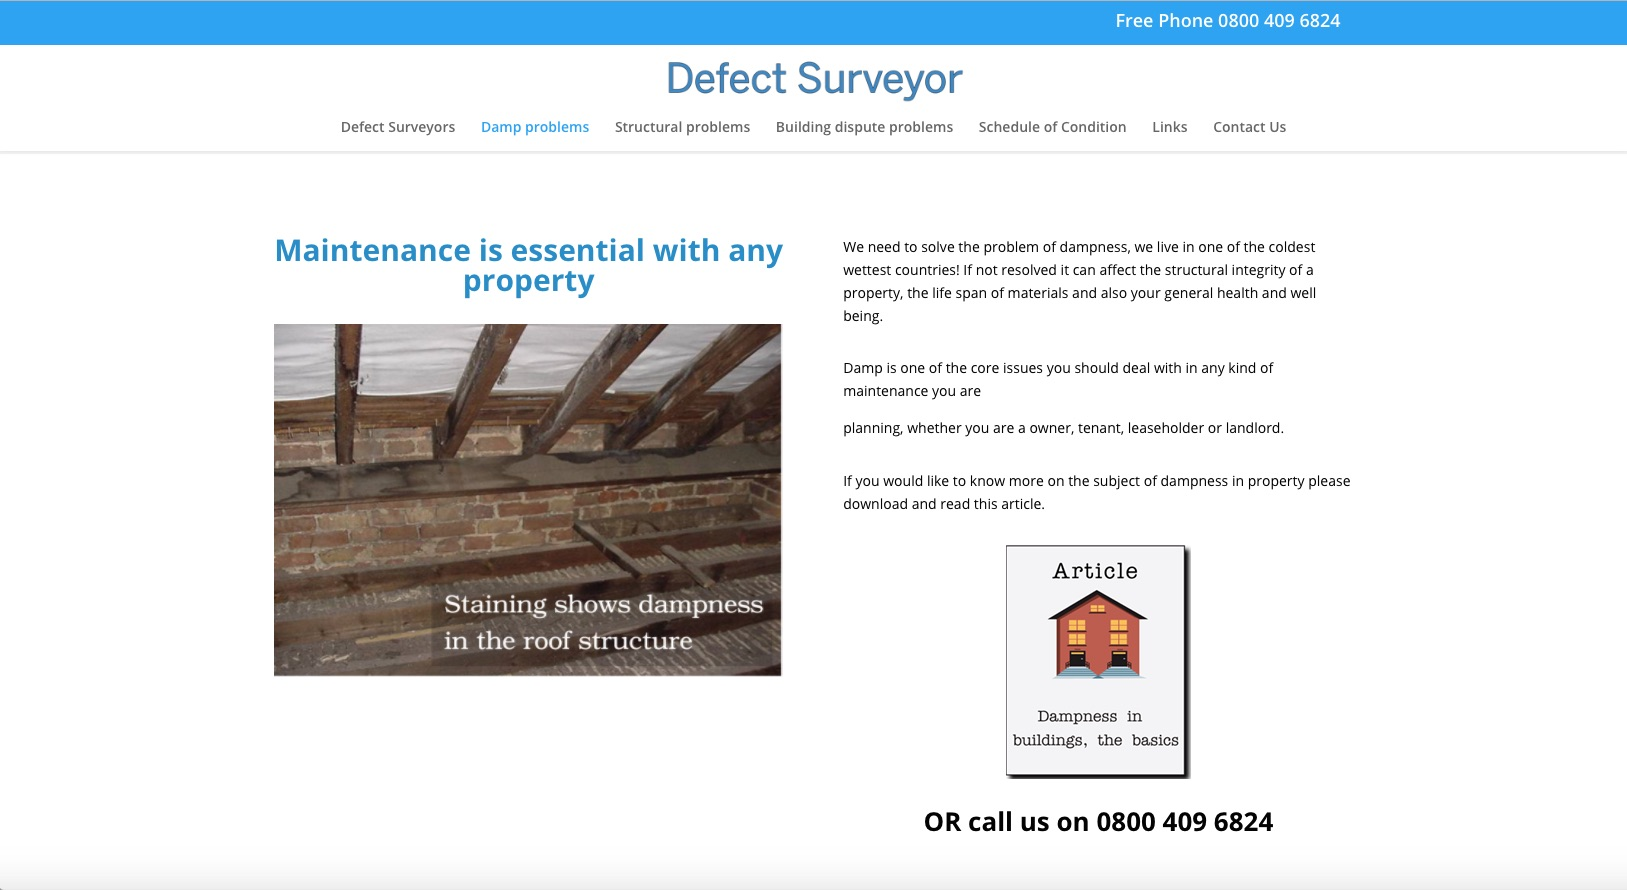 https://defectsurveyor.co.uk - Damp Problems